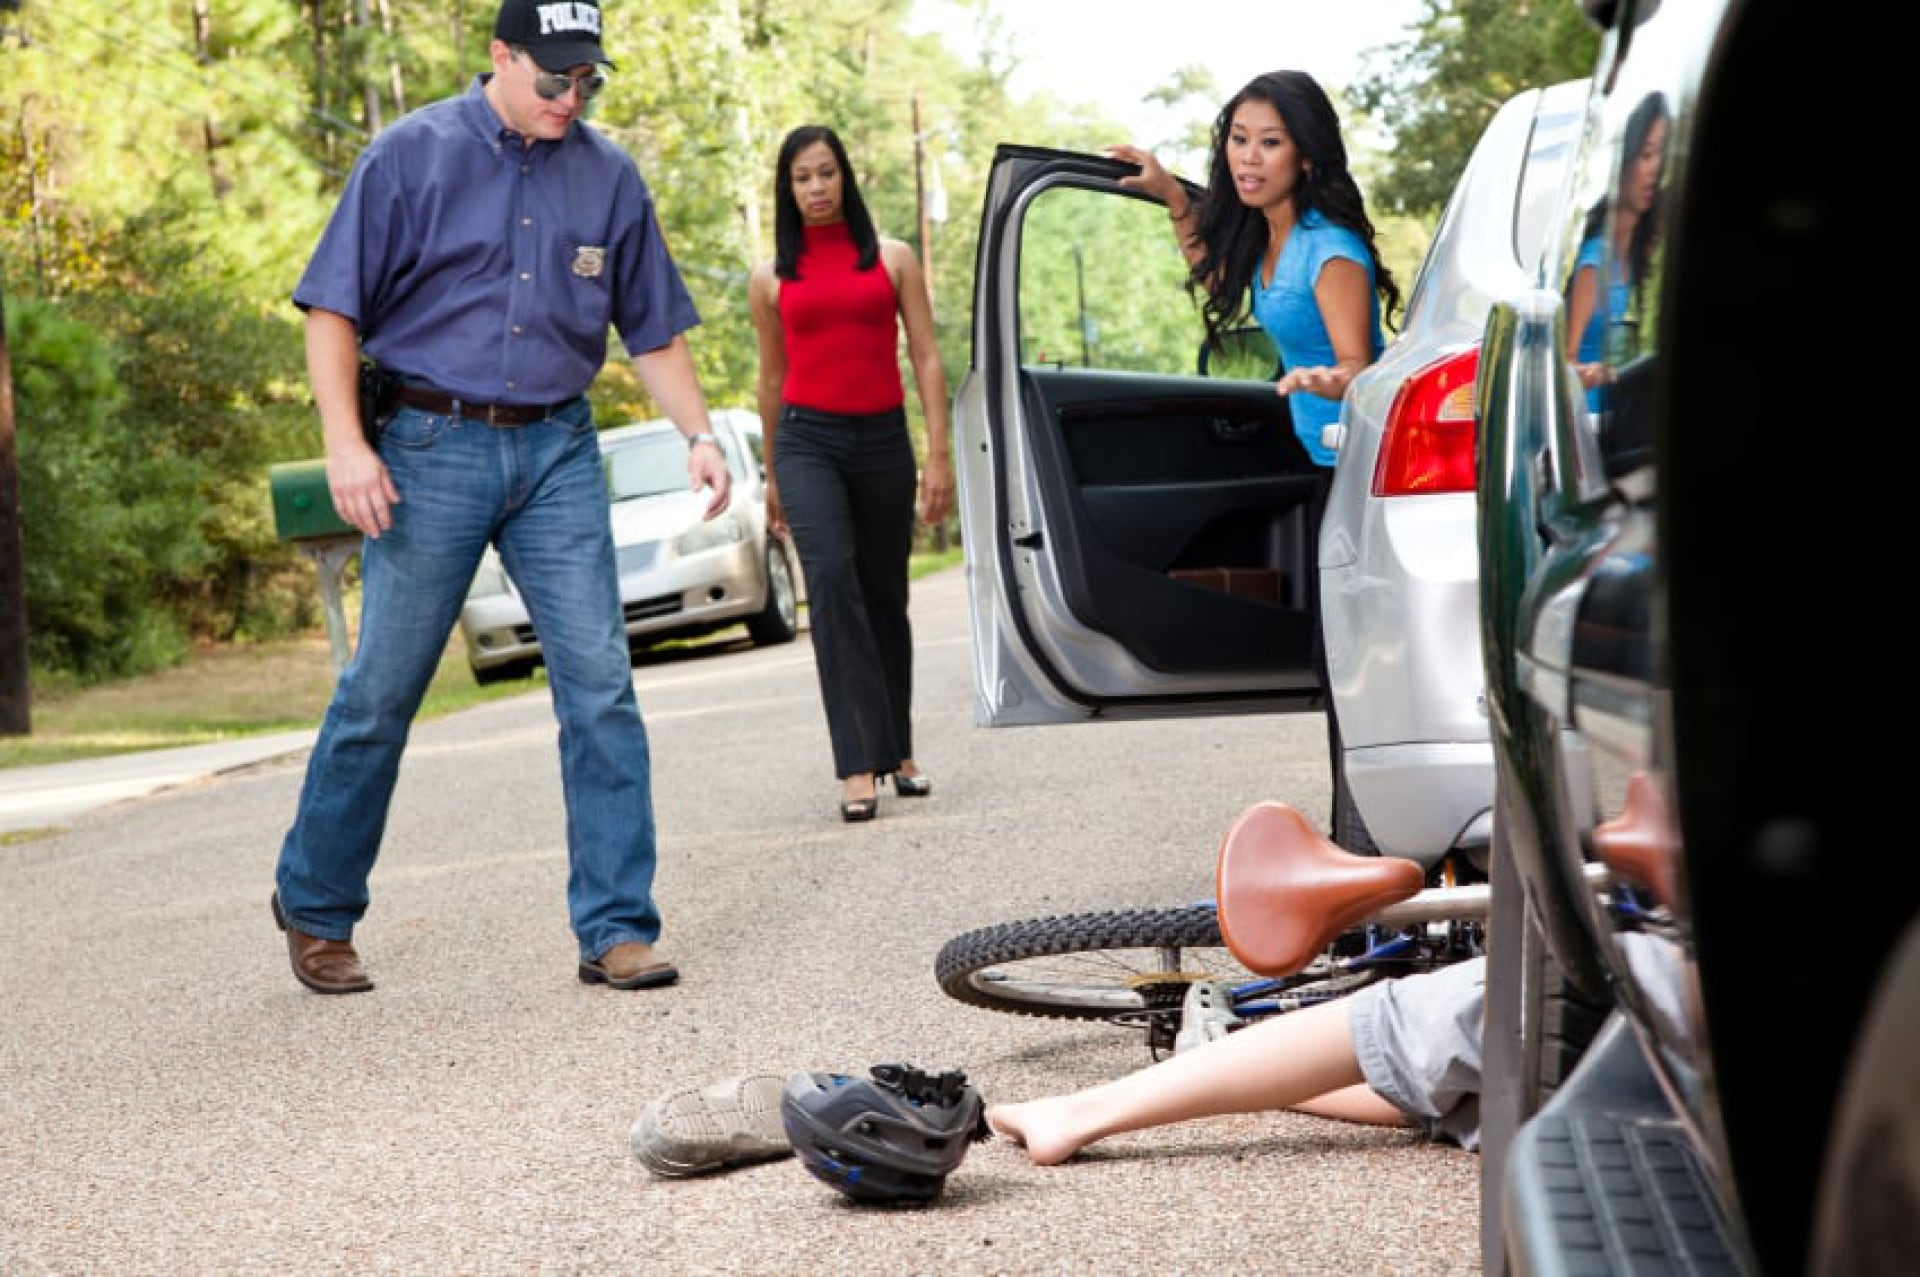 Bicycle Accident Attorney Fort Lauderdale